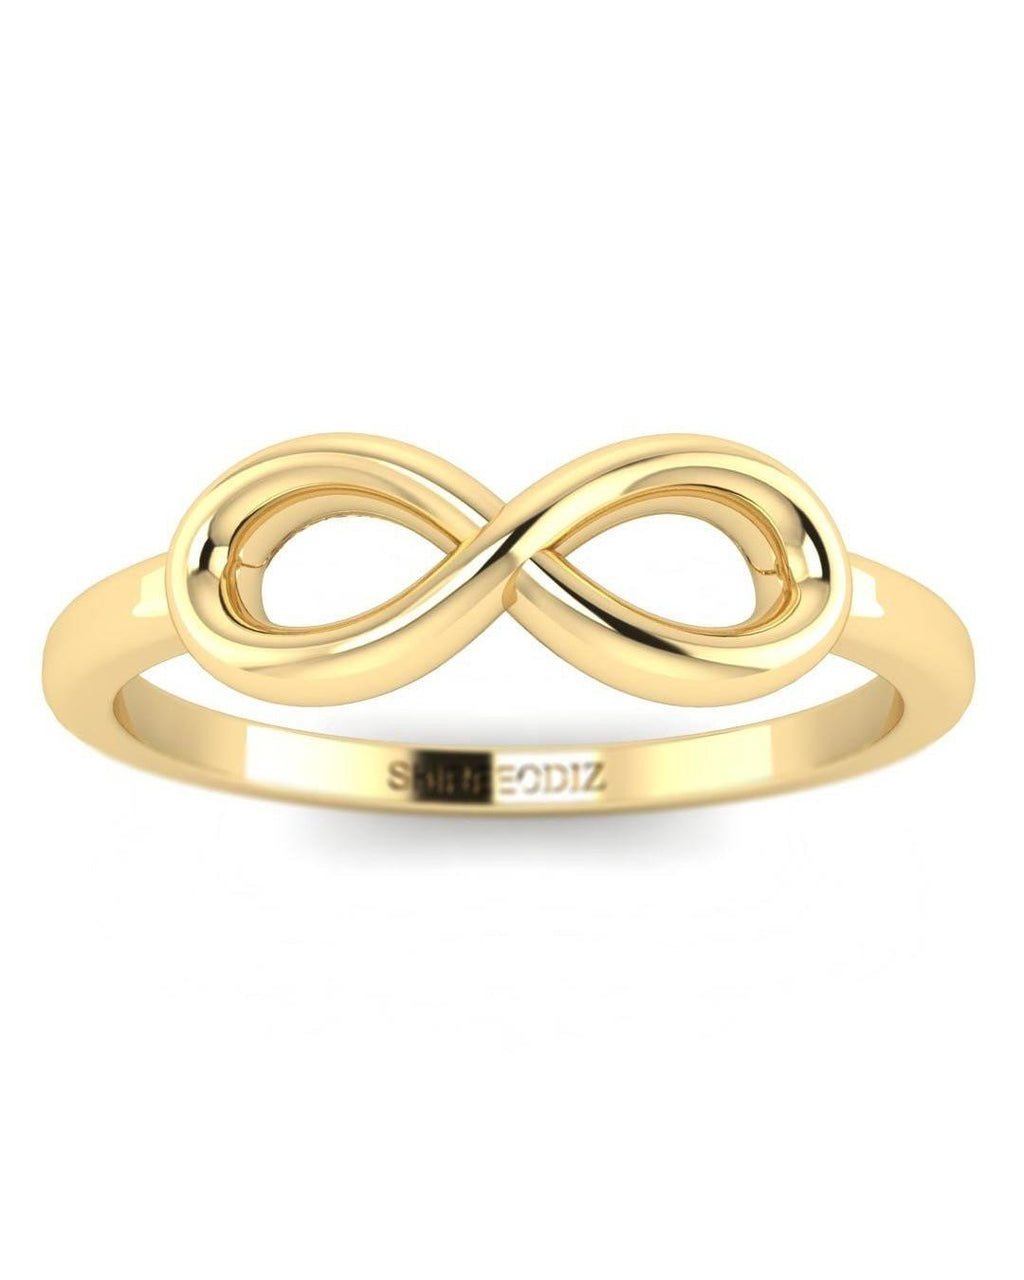 Hidden 14K Yellow Gold Infinity Promise Ring For Her